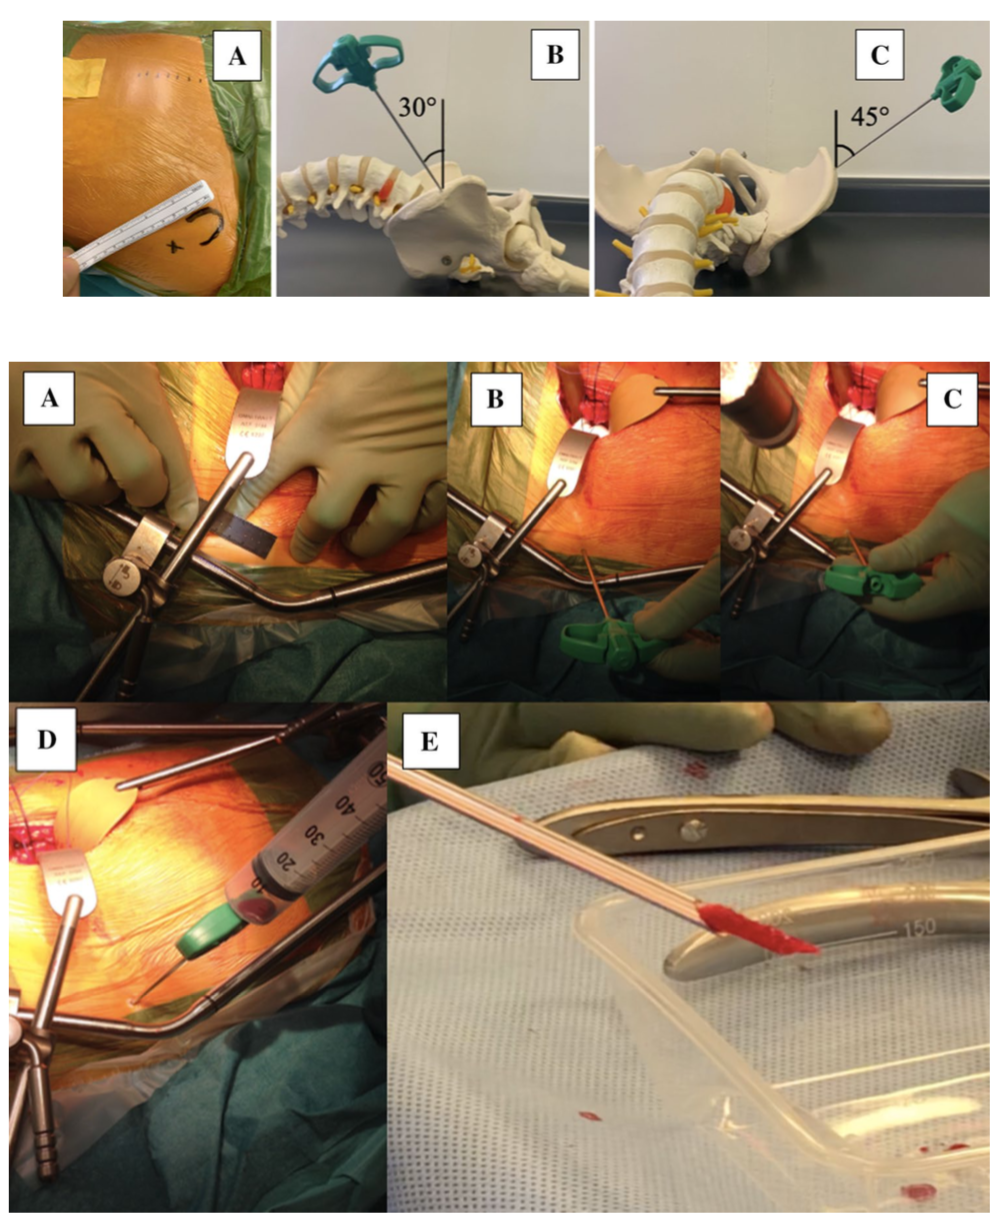 Novel bone grafting technique in stand-alone ALIF procedure combining allograft and autograft ('Northumbria Technique')—Fusion rate and functional outcomes in 100 consecutive patients